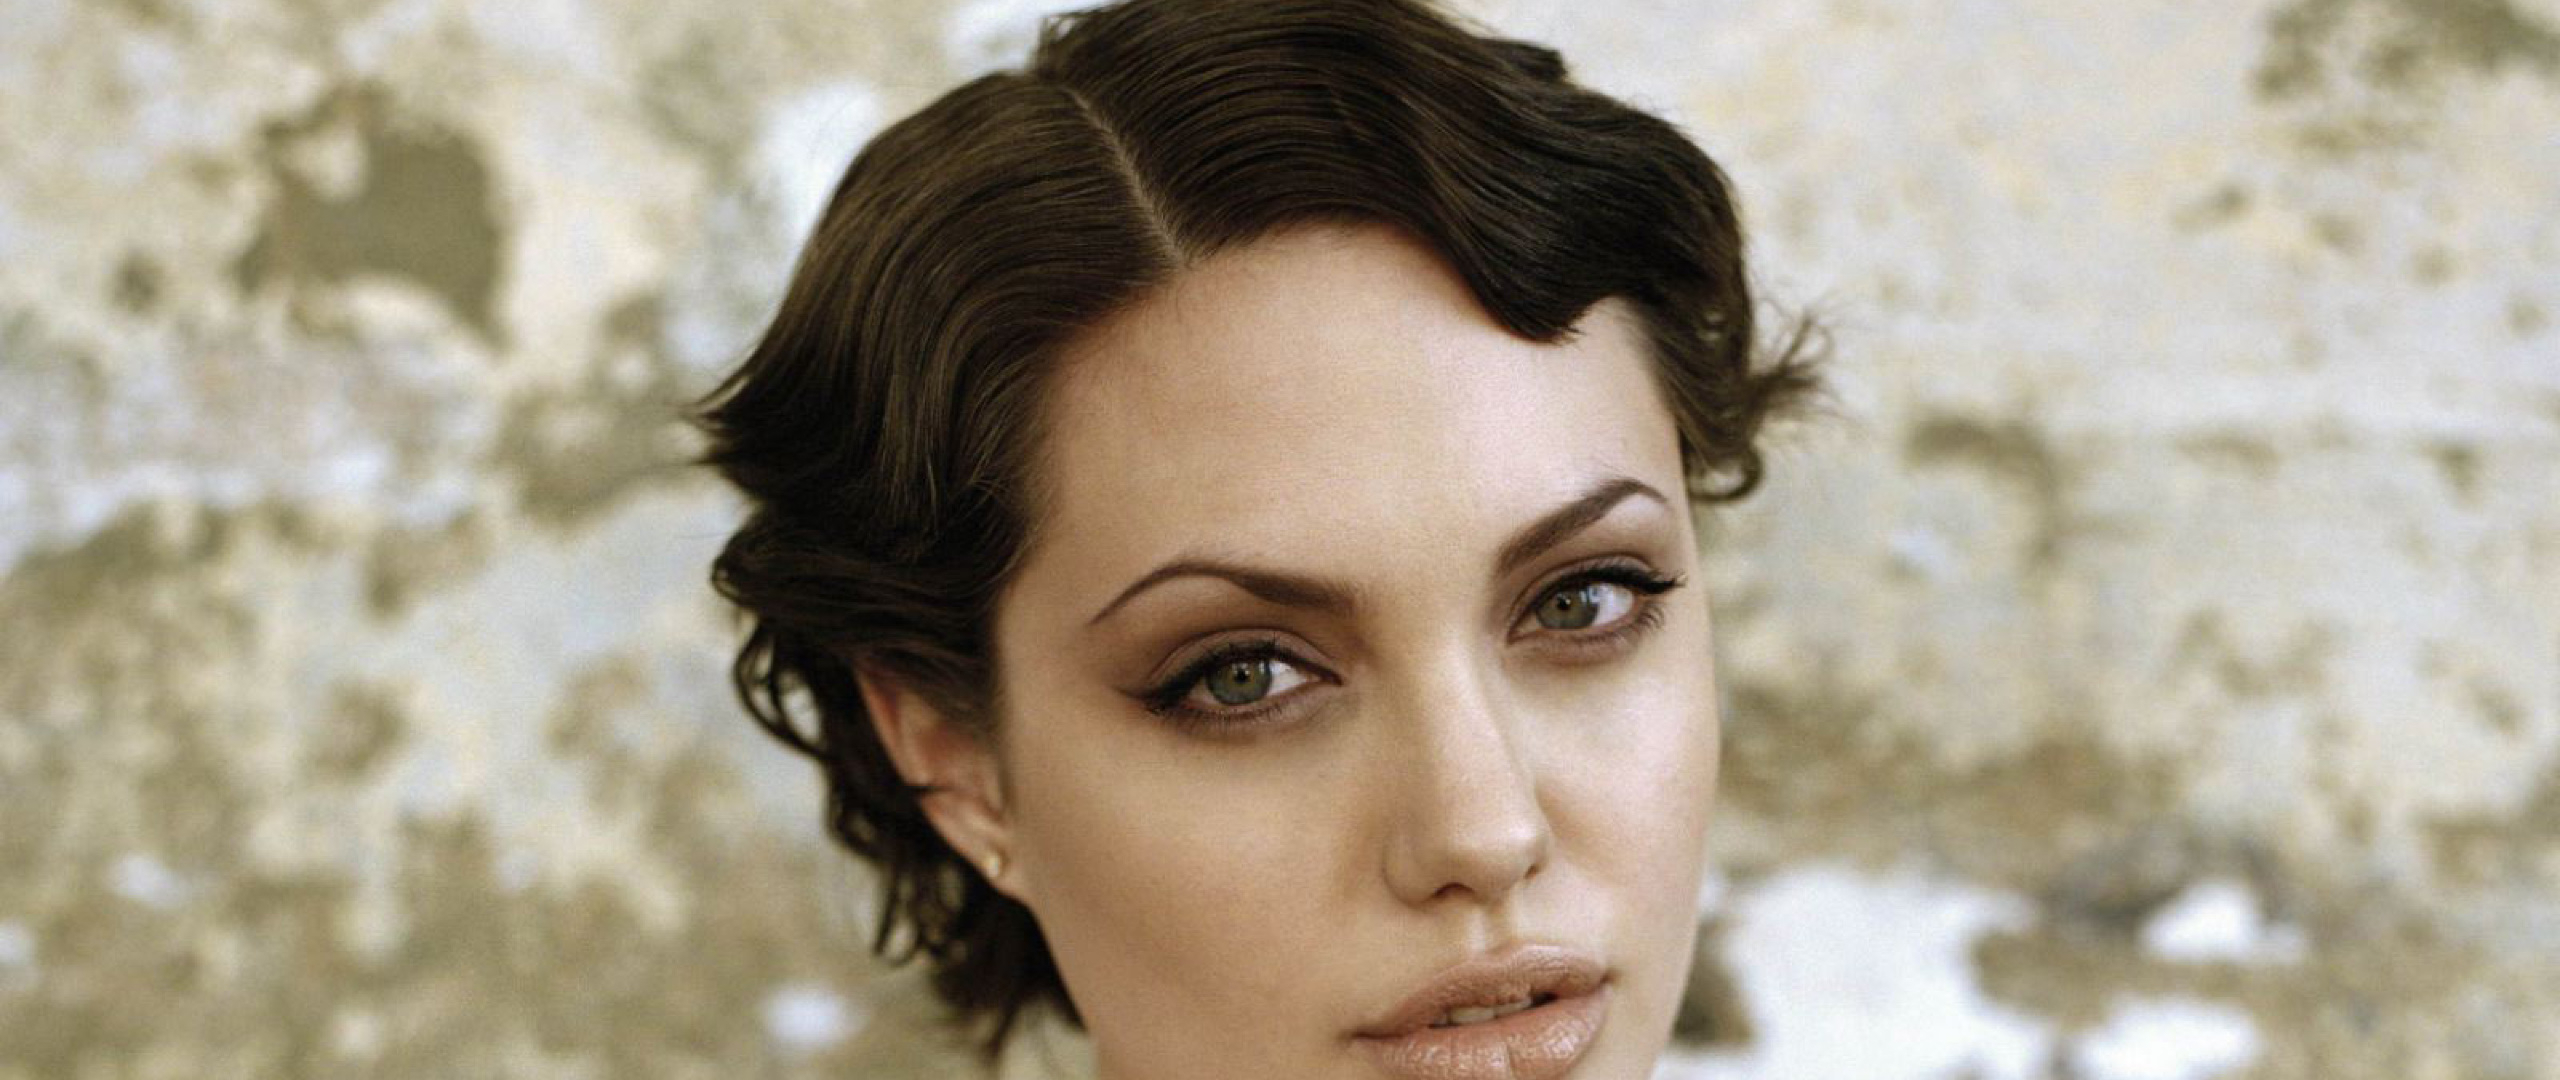 Download Angelina Jolie Short Hair Style Photoshoot 480X800 Regarding Angelina Jolie Short Hairstyles (Gallery 13 of 25)